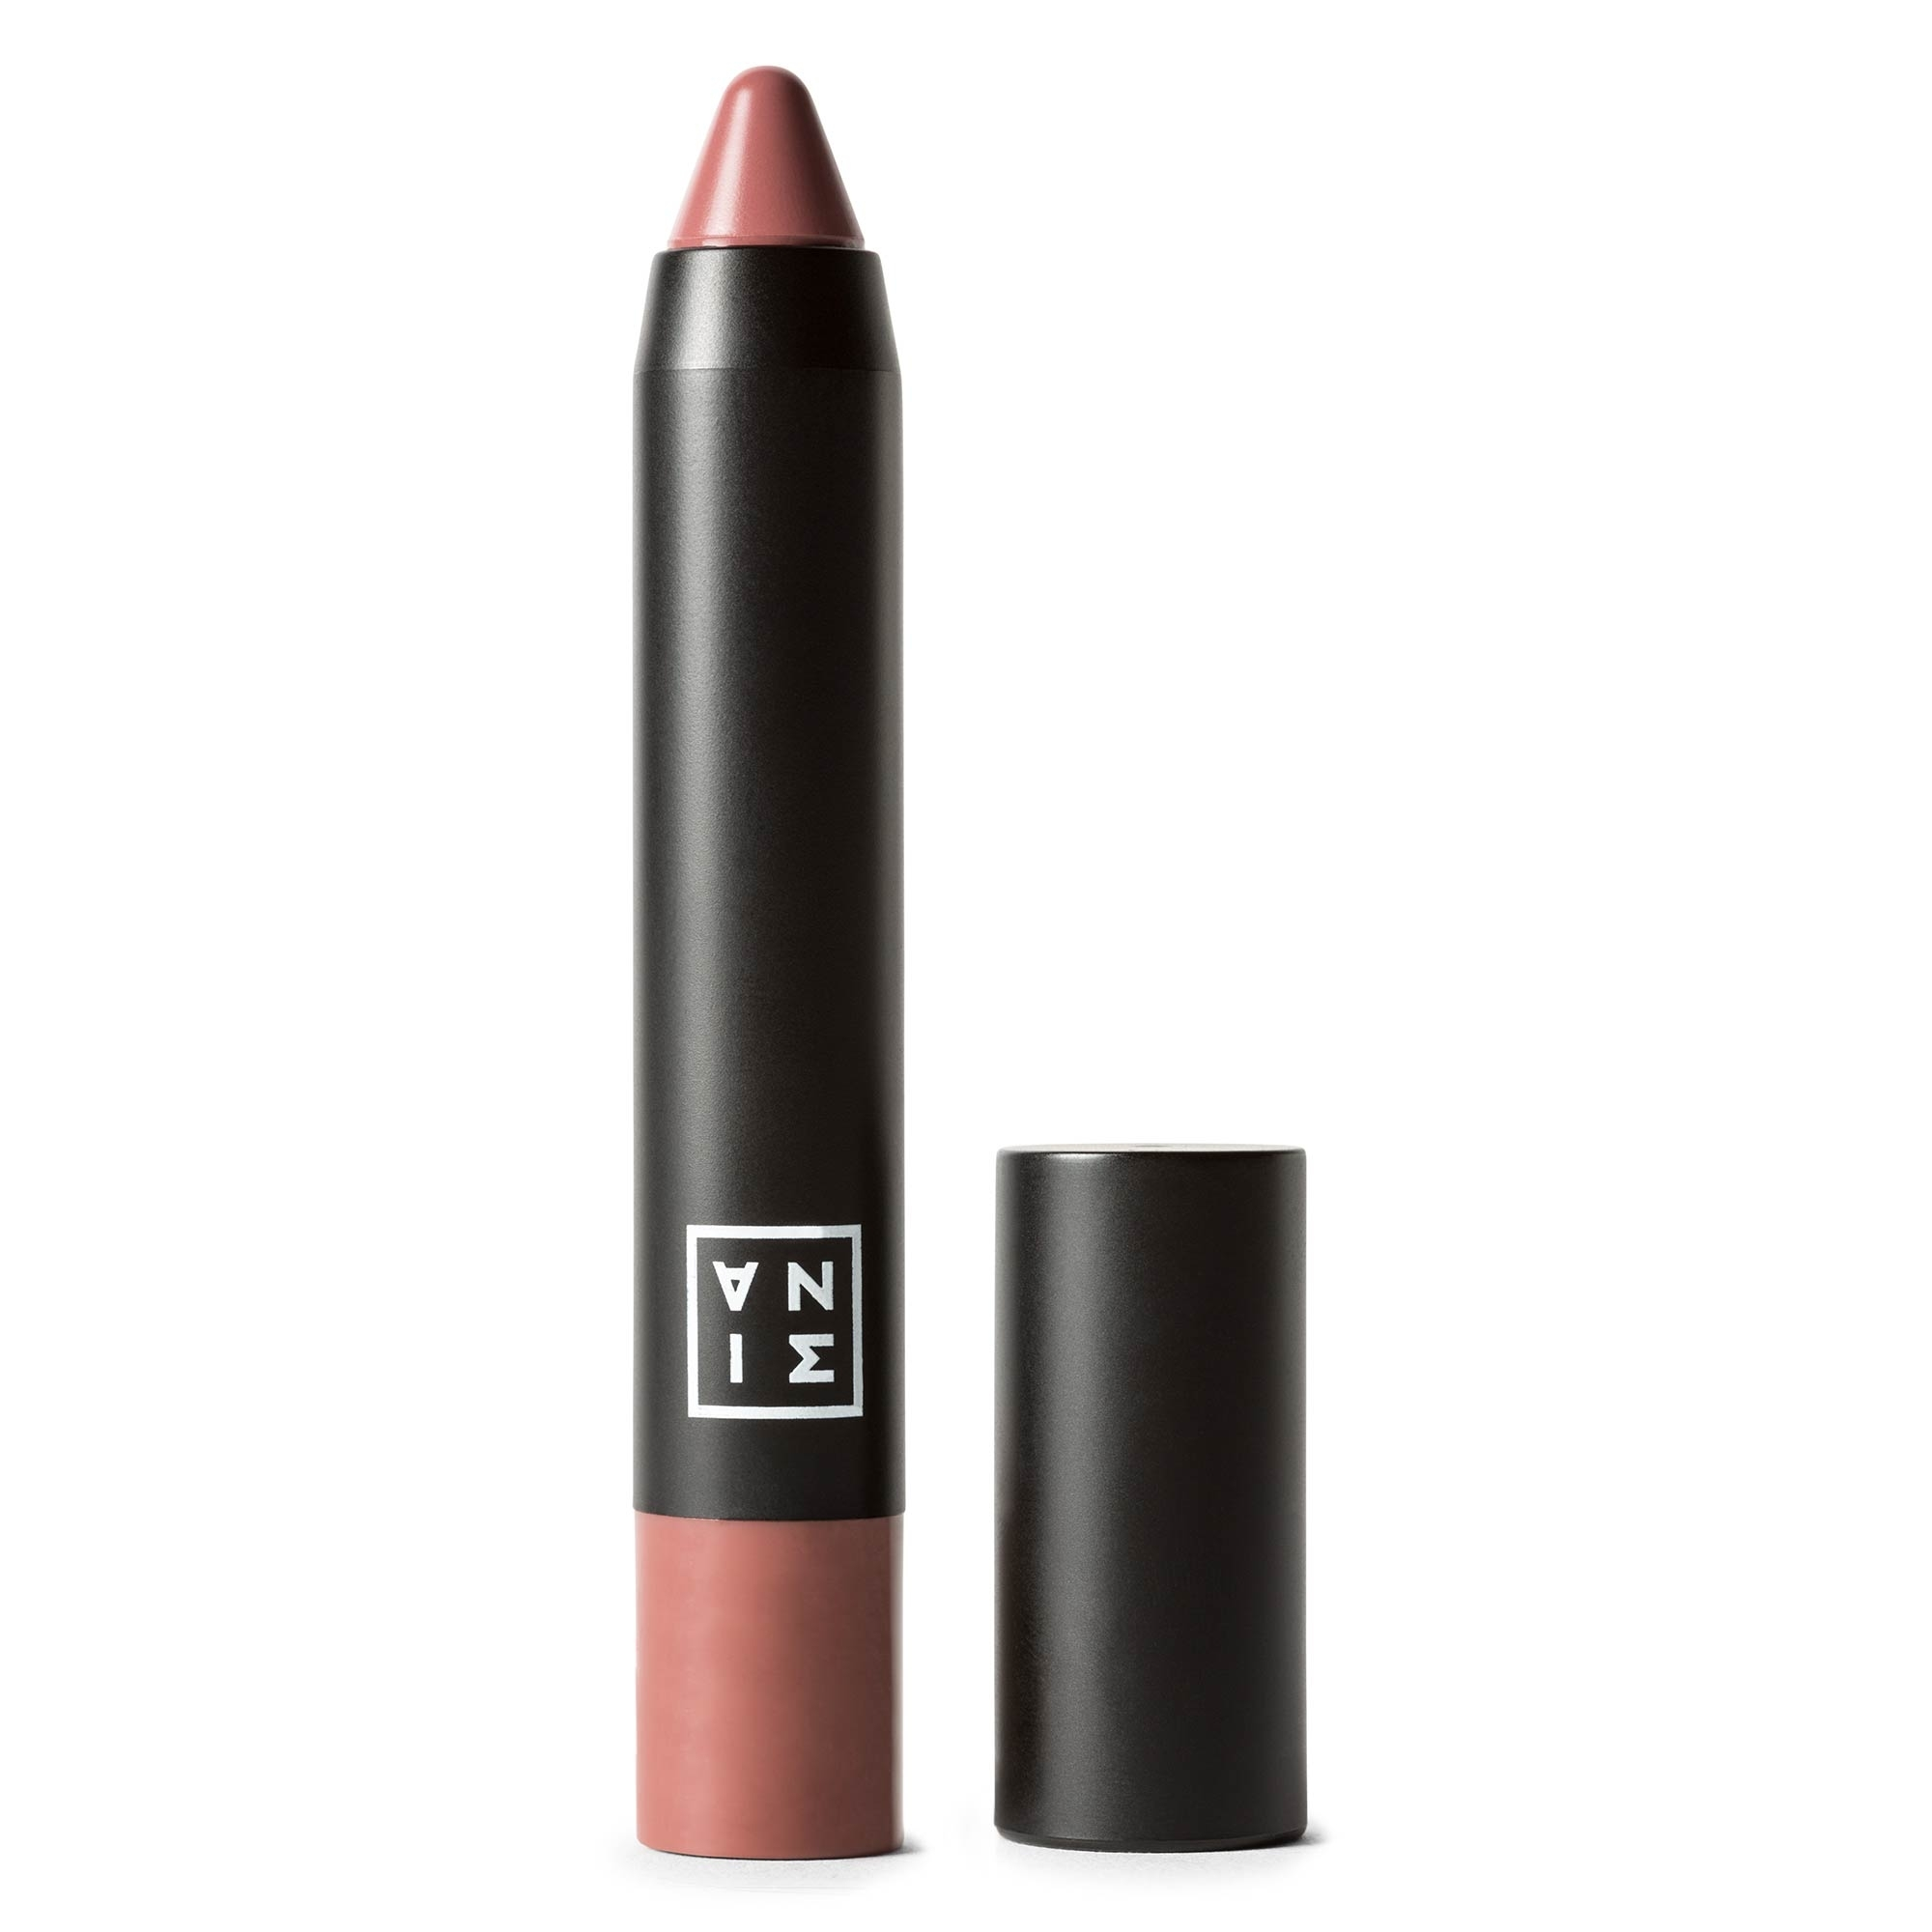 3INA Makeup | The Chubby Lipstick 111 Nude